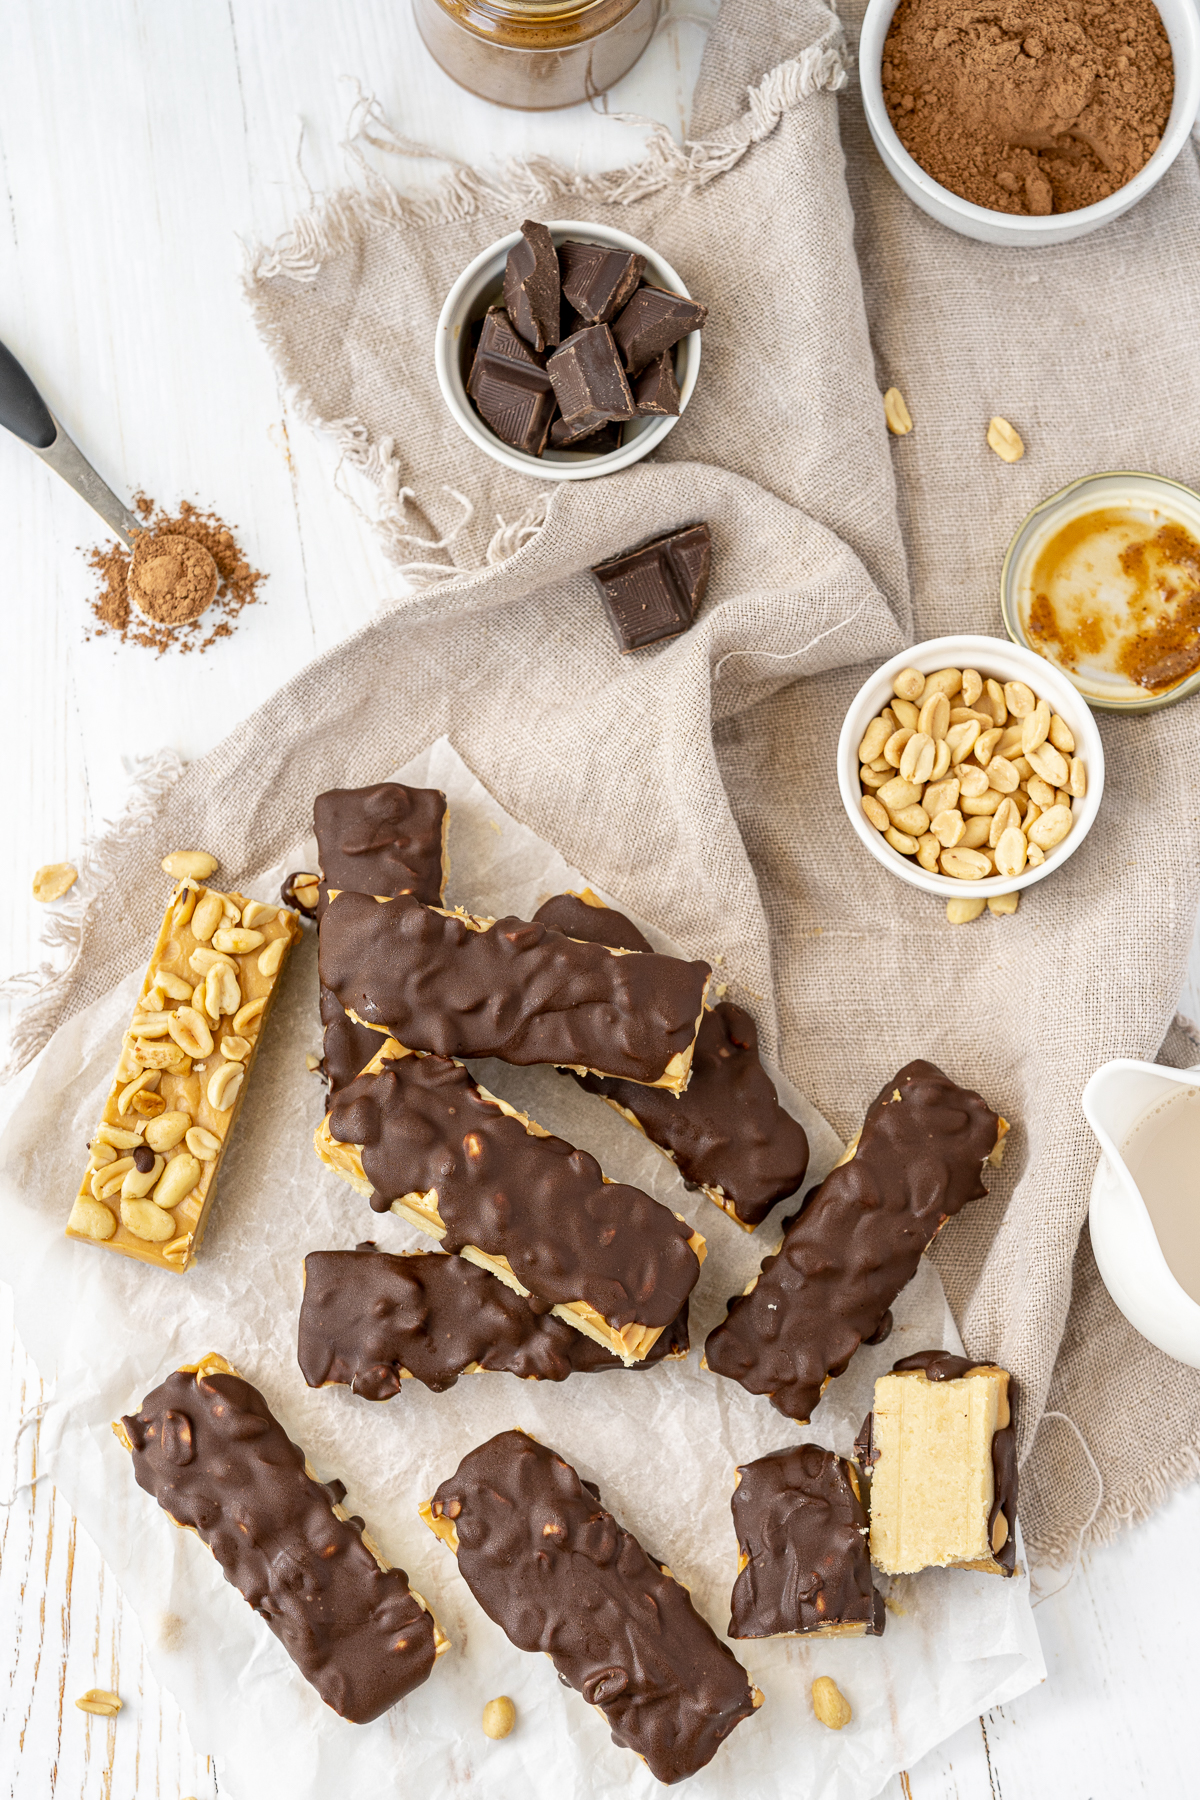 Simple to make, low carb, healthy and delicious, These No Bake Homemade Snickers Bar will be your new favorite treat!